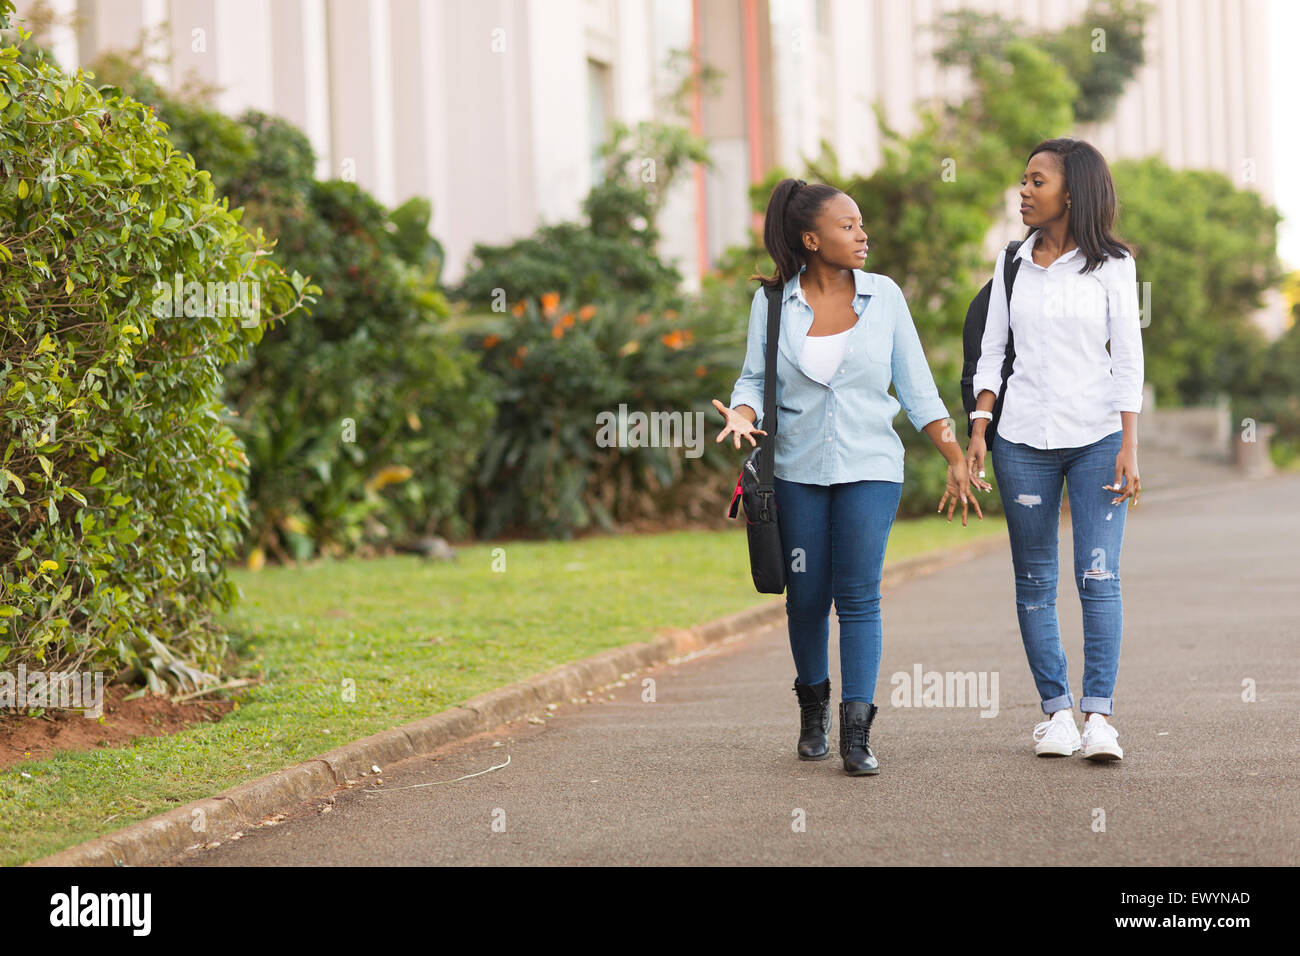 pretty African college students walking together on campus Stock